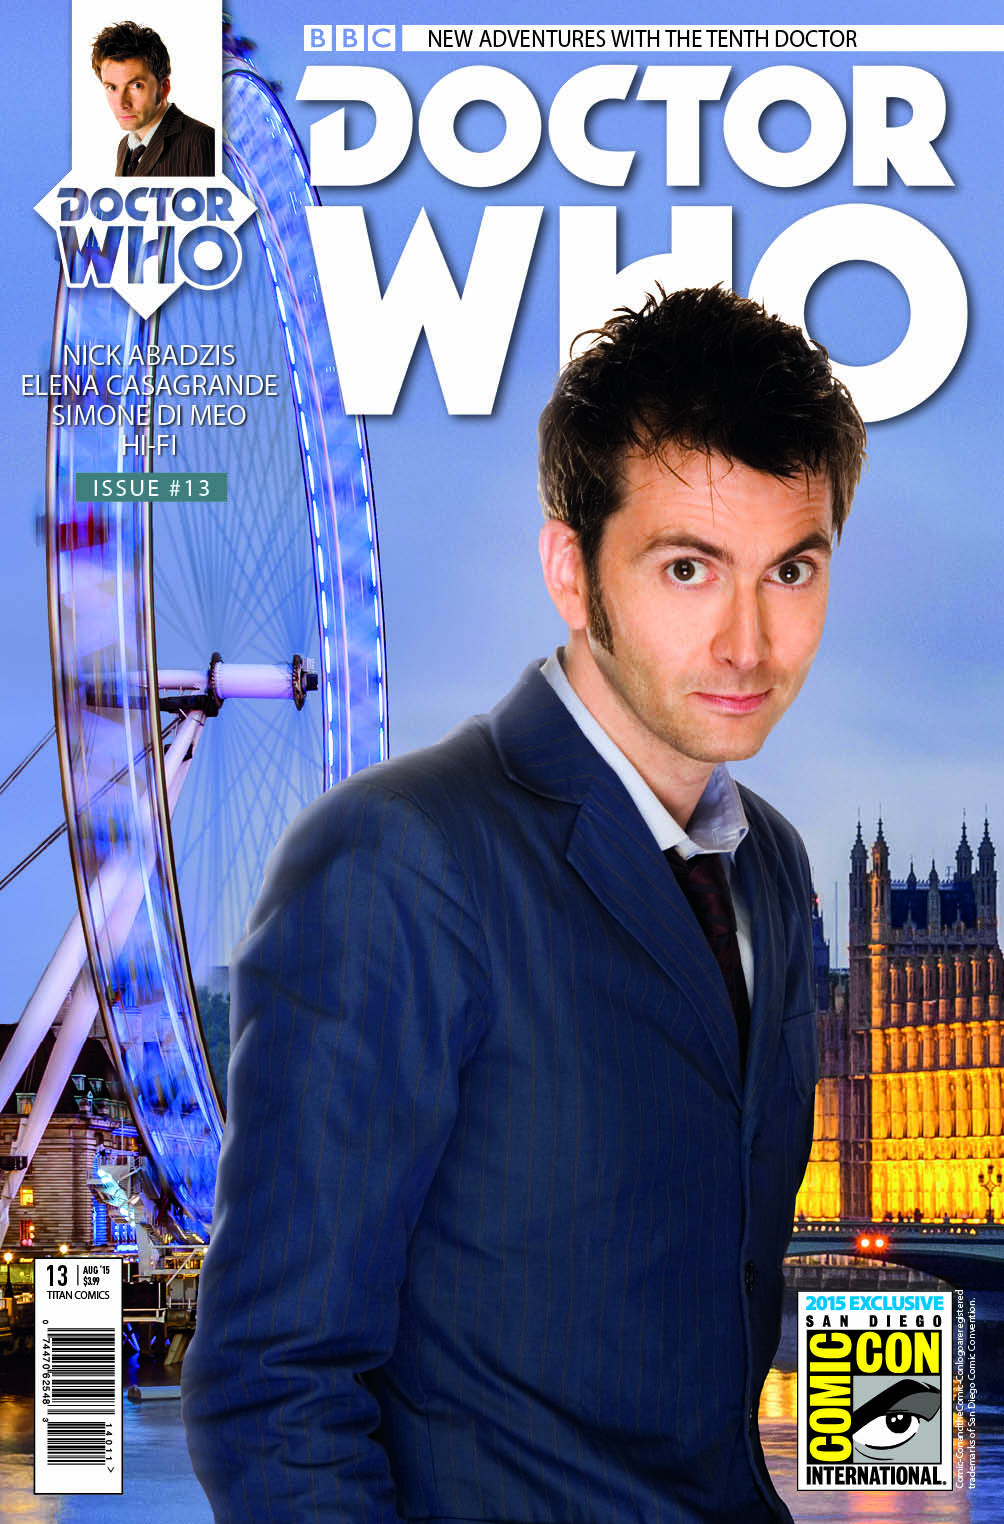 Doctor Who: Tenth Doctor #14 (SDCC Exclusive Cover) (Credit: Titan Comics)